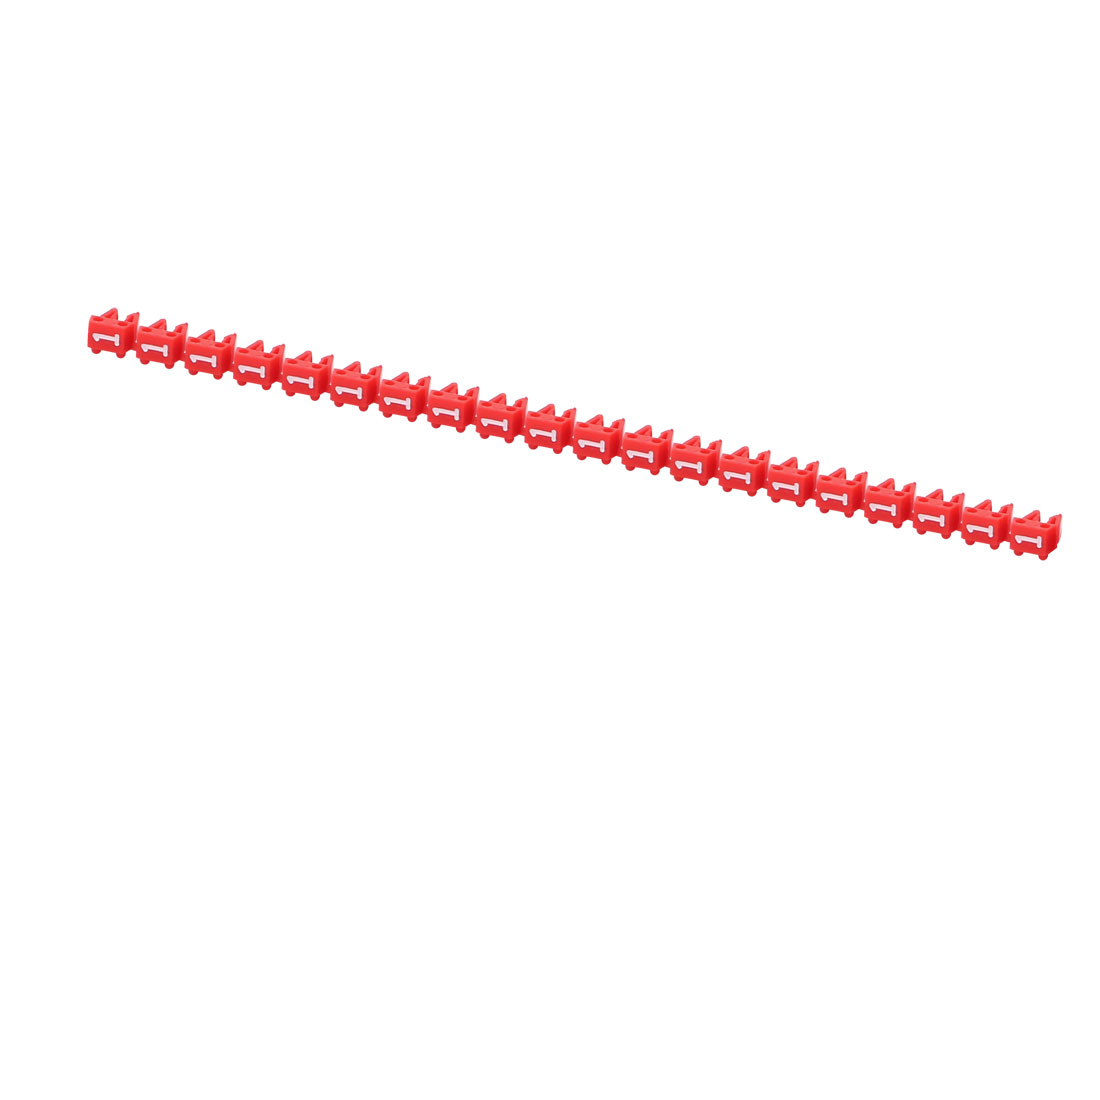 20Pcs Letters 1 Network Cable Labels Markers Red for 1.0-3.0mm Dia Cable